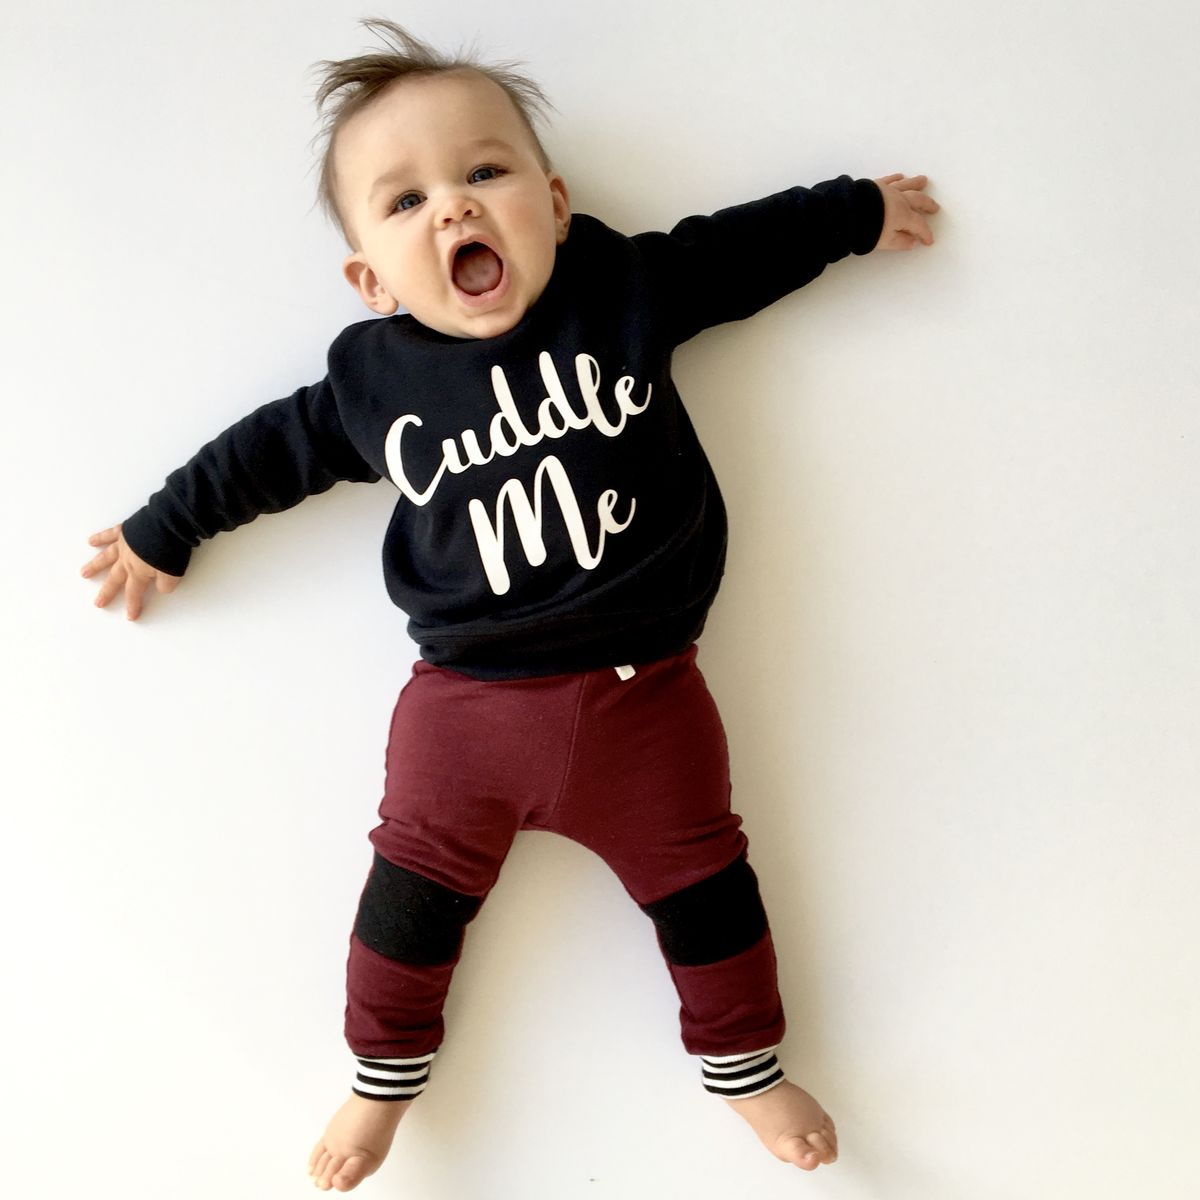 'Cuddle Me' Kids Sweatshirt (various sizes) - product images  of